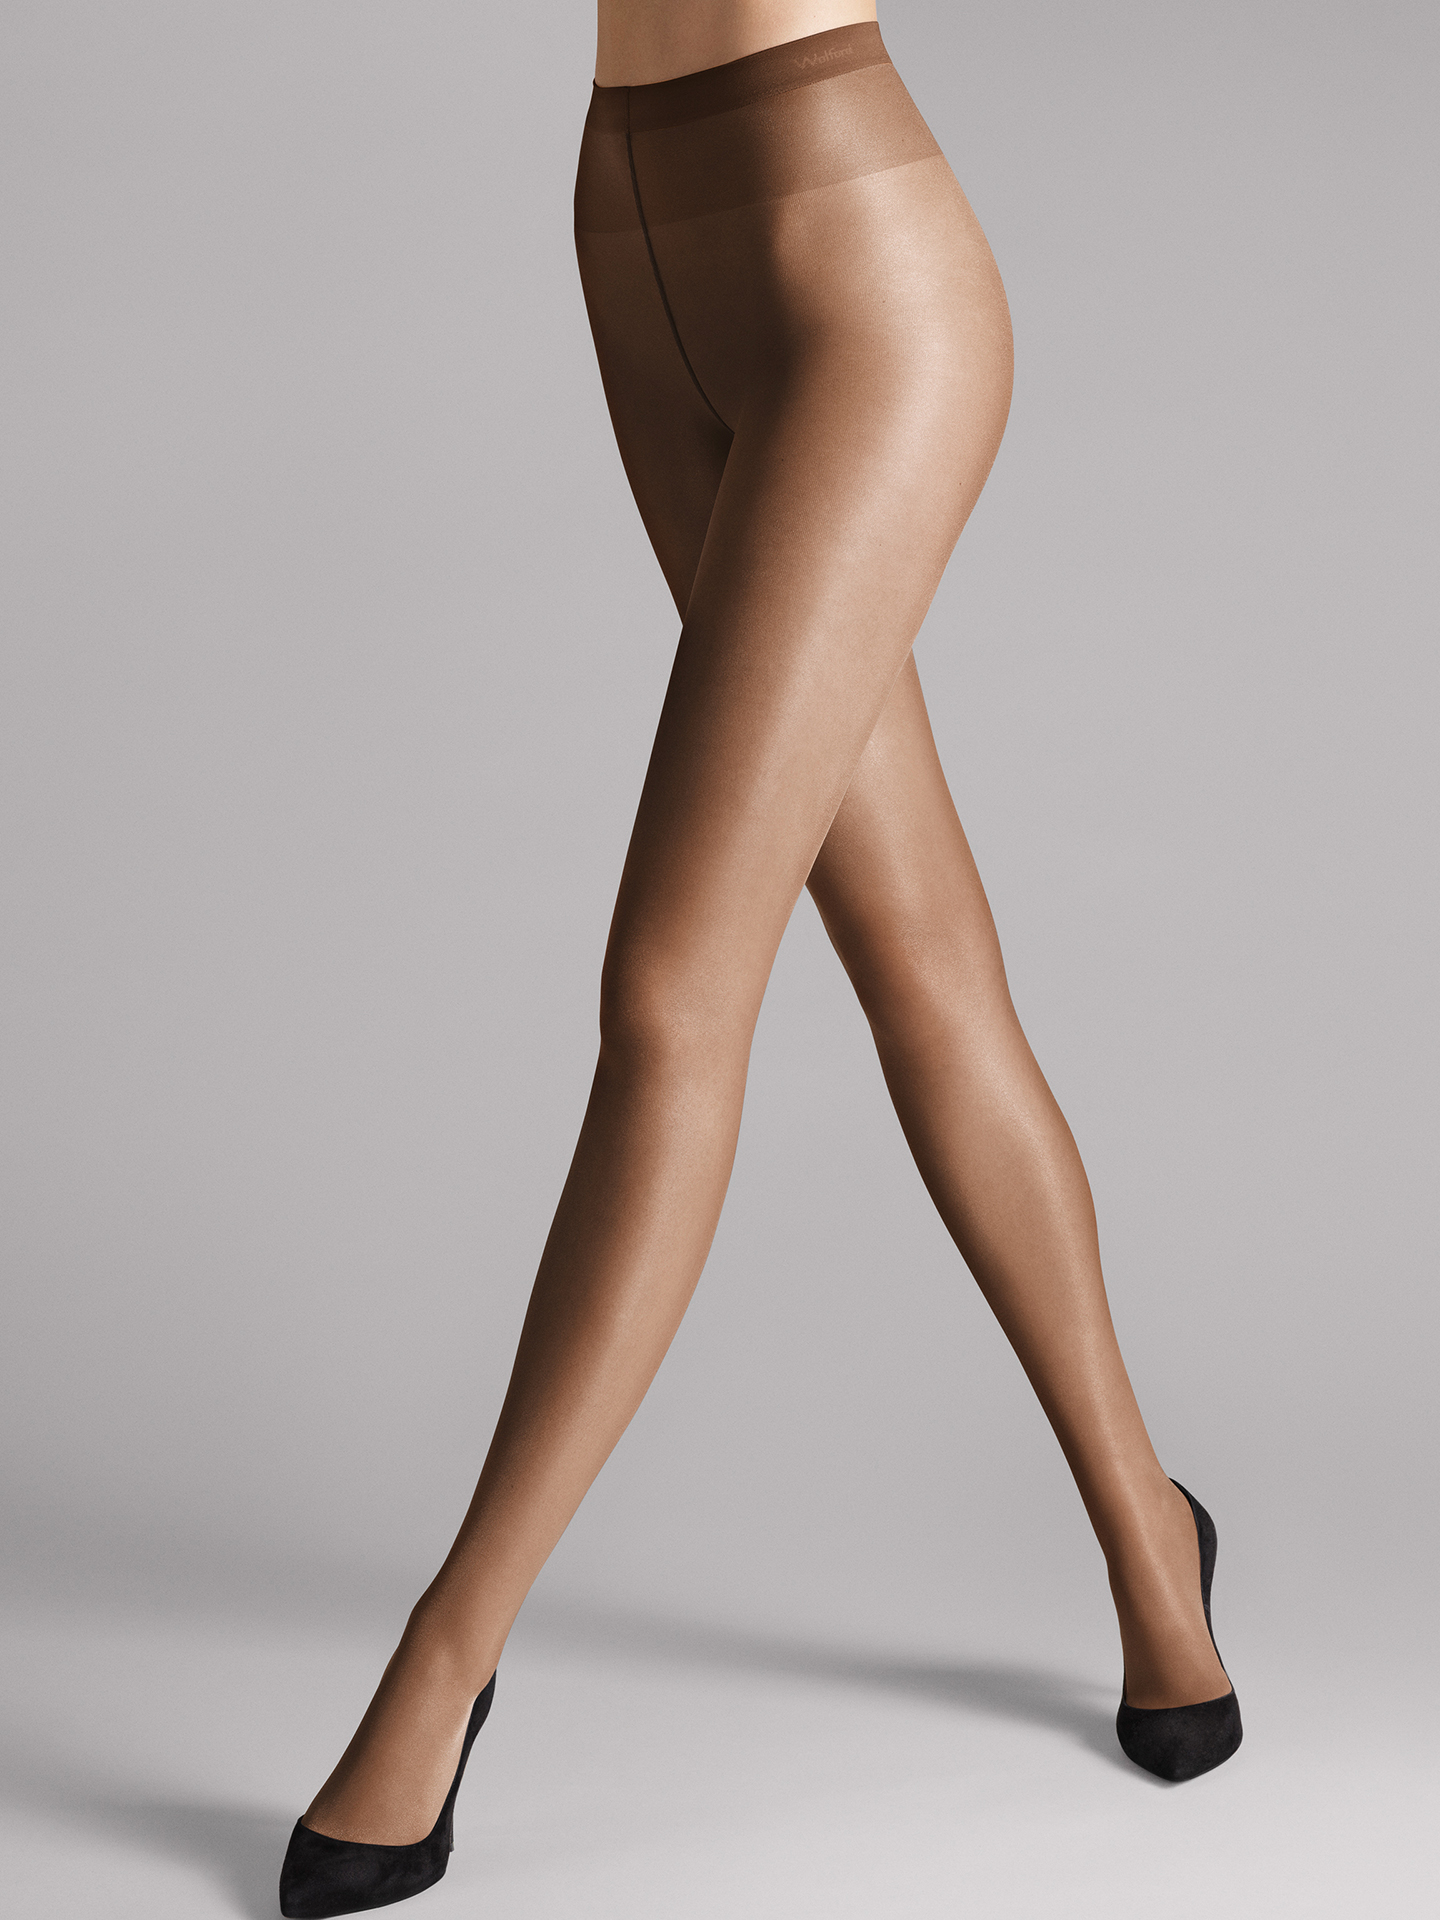 Wolford Apparel & Accessories > Clothing > Collant Satin Touch 20 - 4023 - L